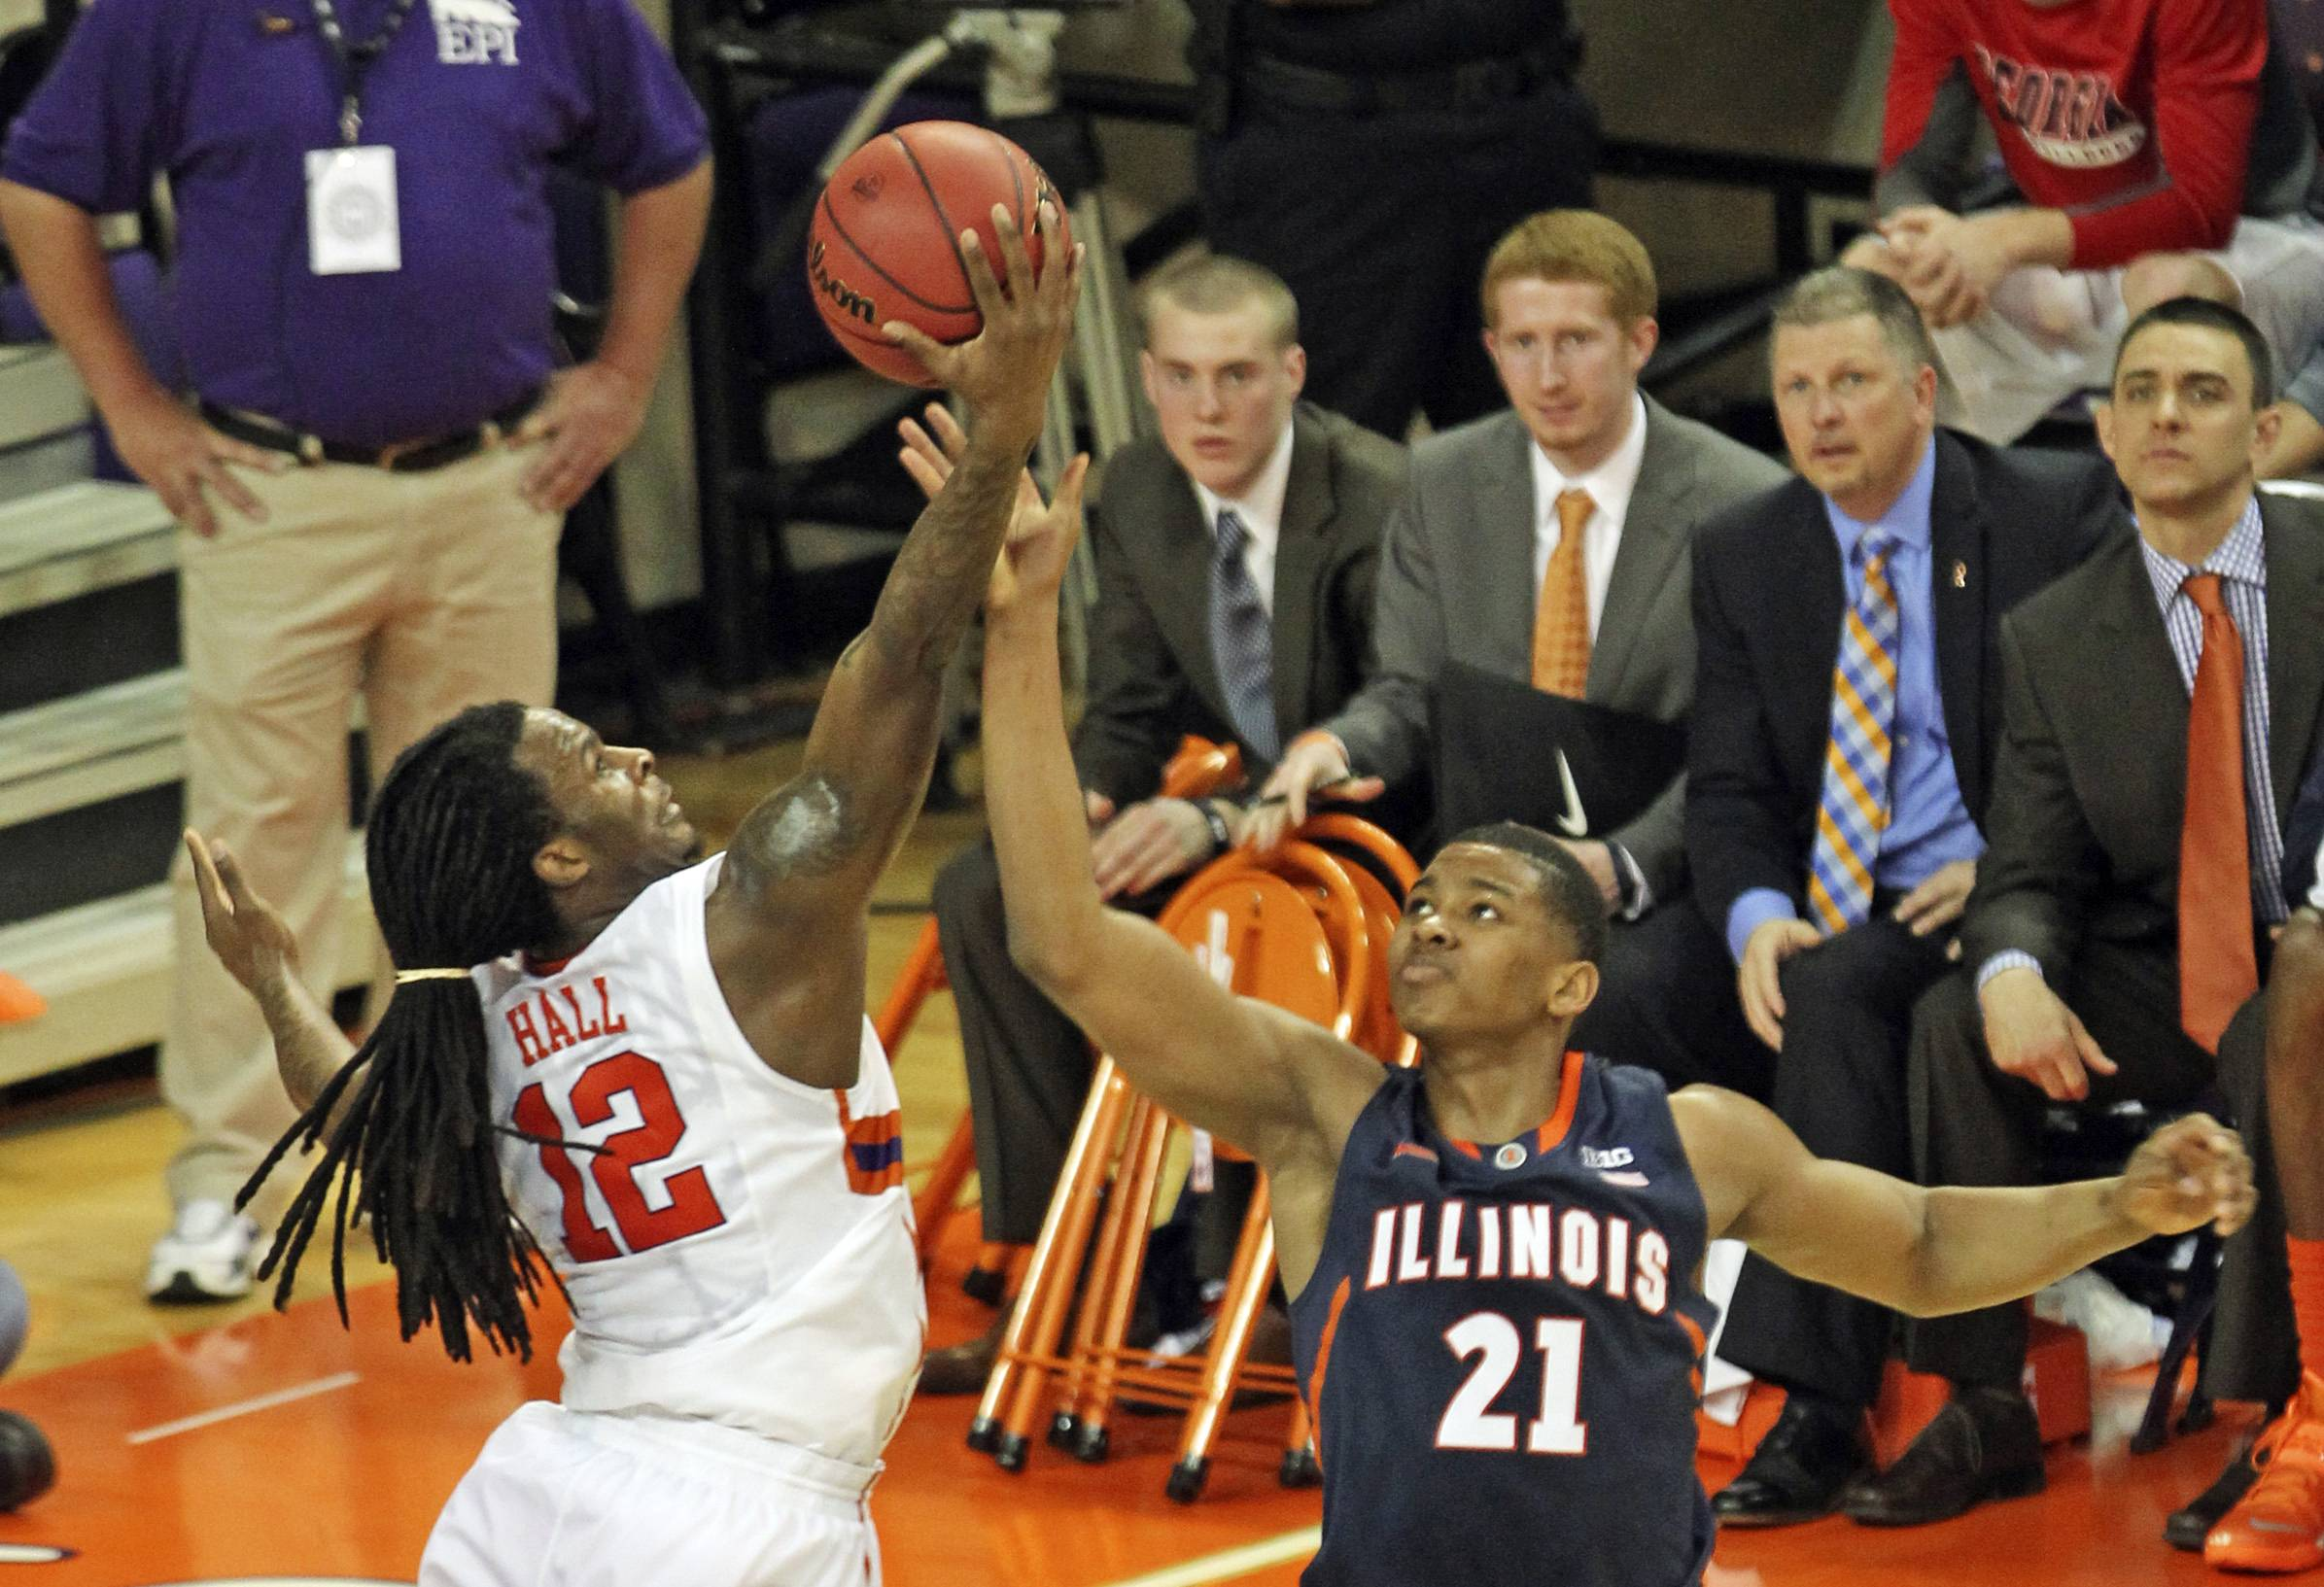 Clemson's Rod Hall, left, steals the ball from Illinois' Malcolm Hill during the second half of an NCAA college basketball National Invitational Tournament game in Clemson, S.C., on Sunday, March 23, 2014.